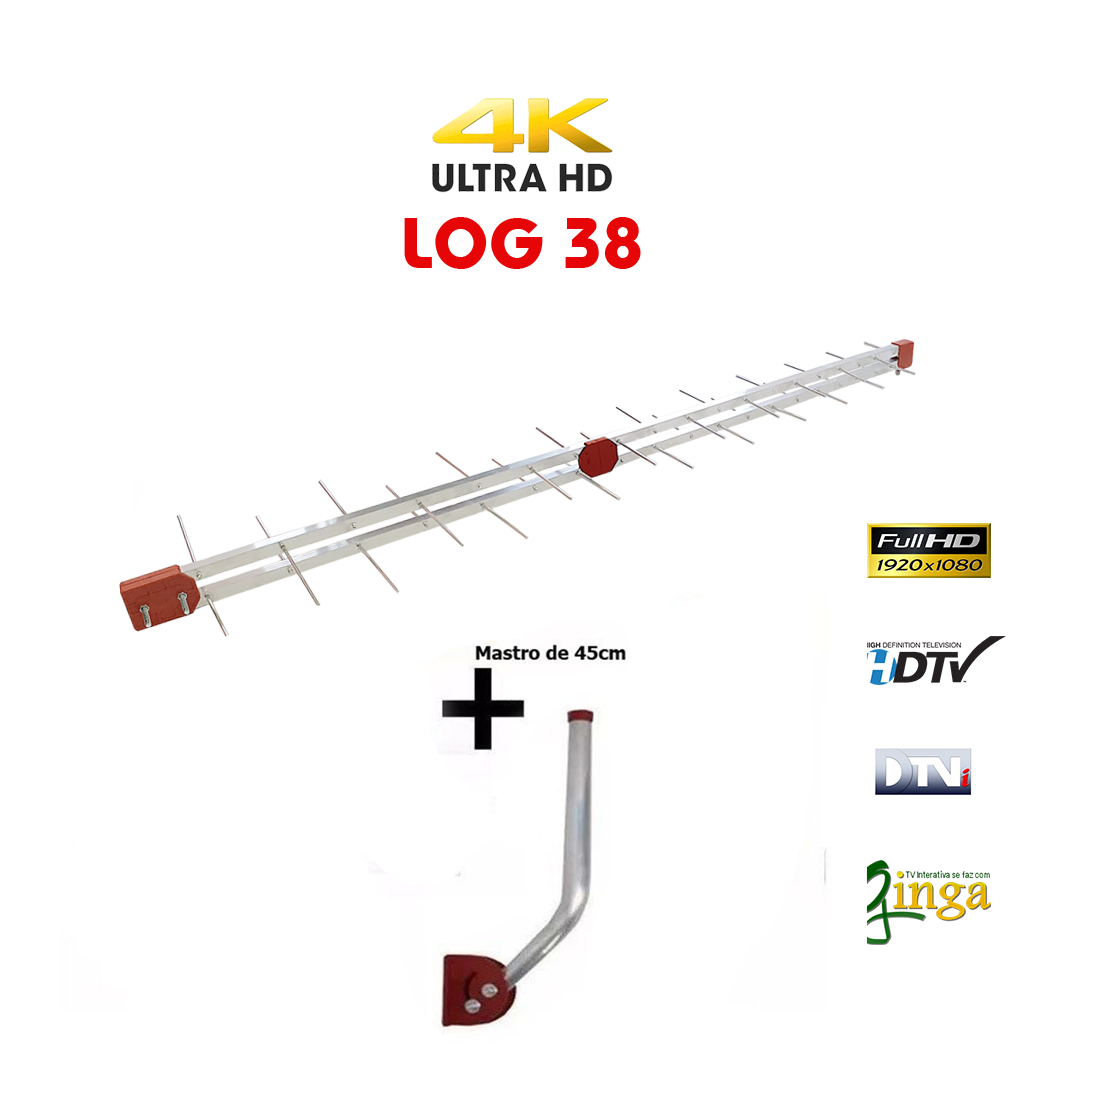 Antena Digital 4k Externa Log 38 + Mastro 75cm